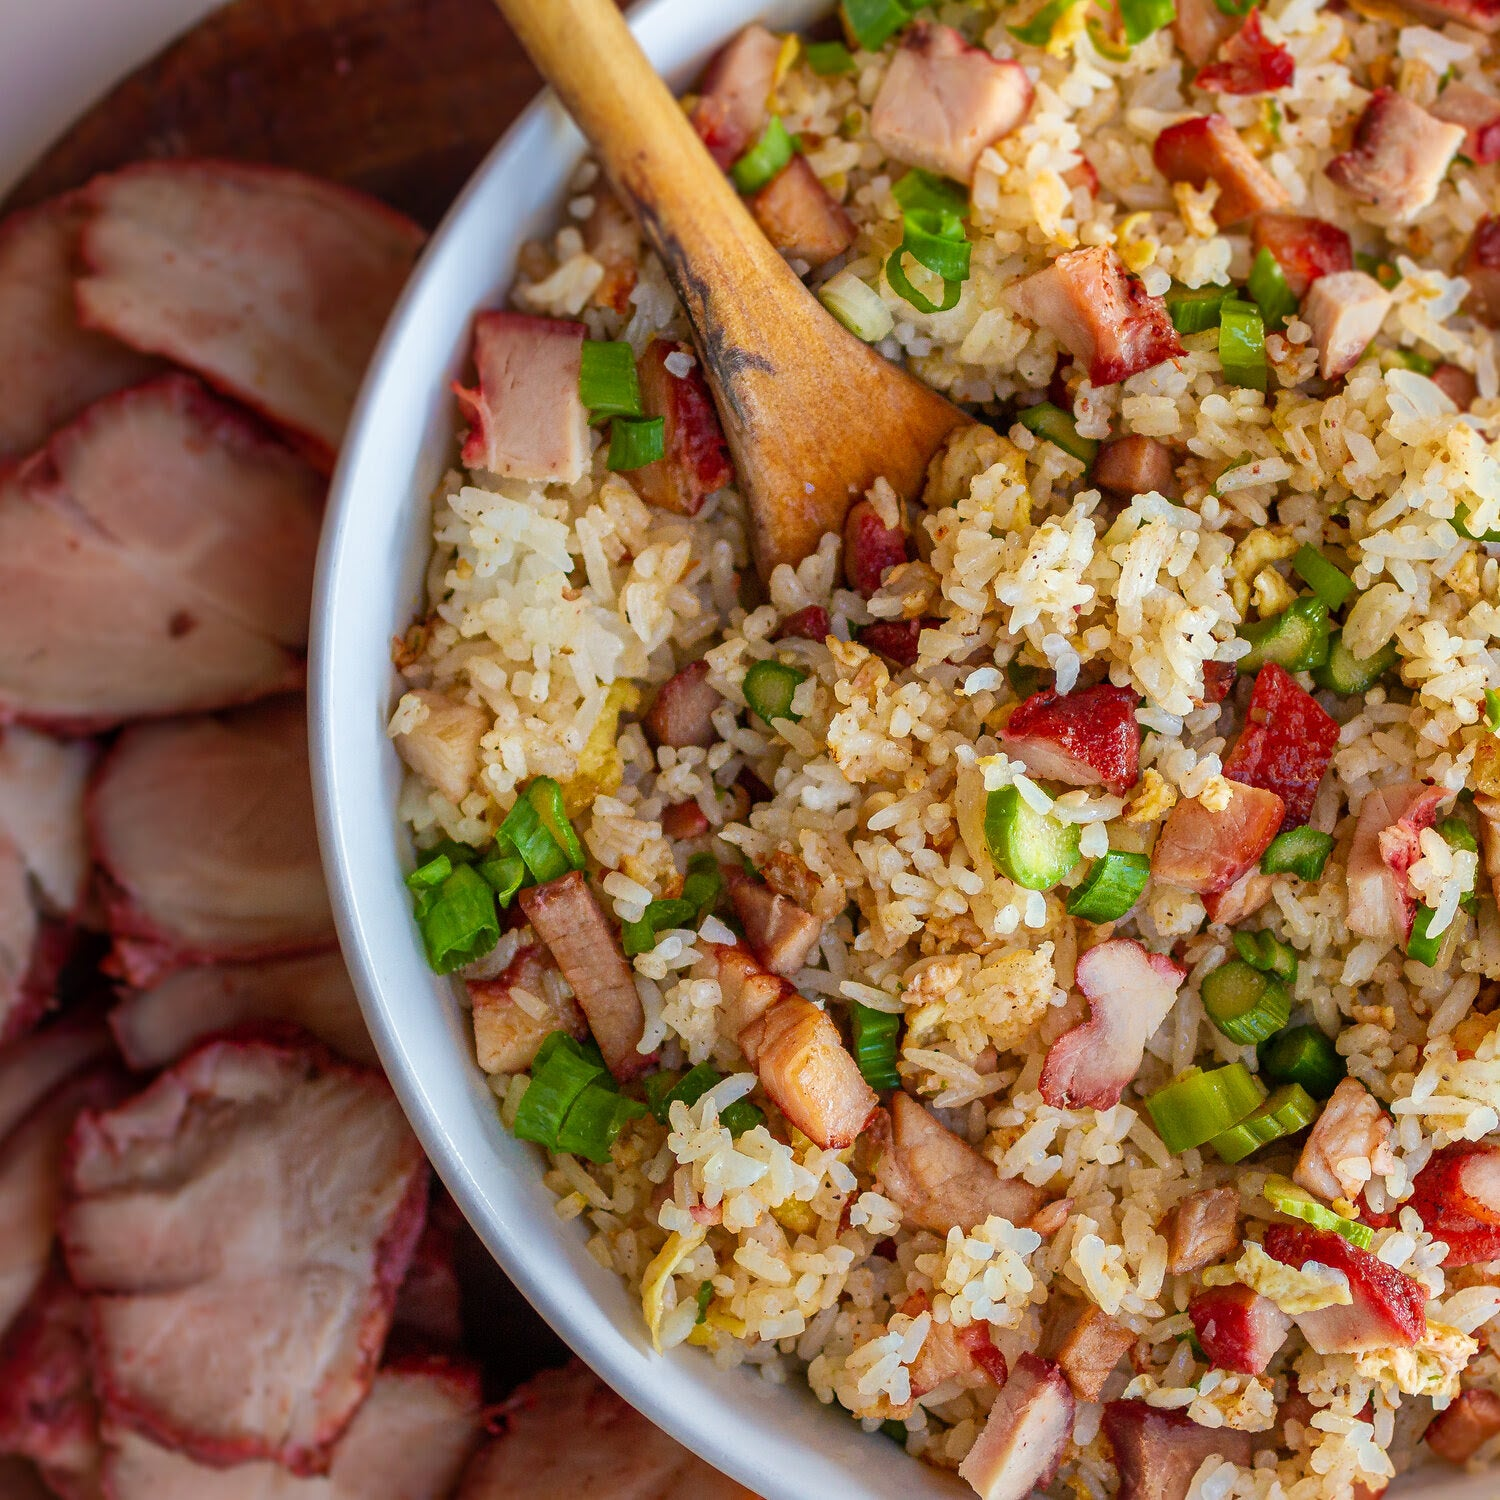 BBQ Pork Fried Rice (Com Chien Duong Chau)